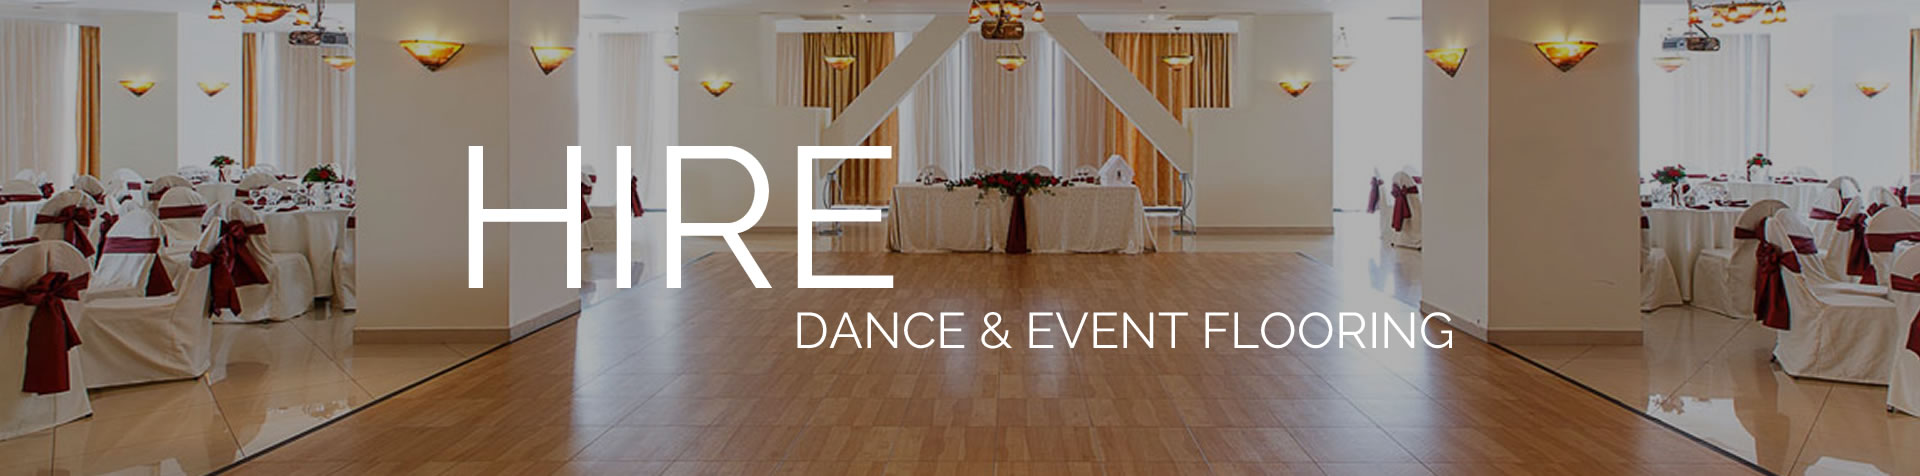 Hire Portable Dance Floor Hire And Sales In The